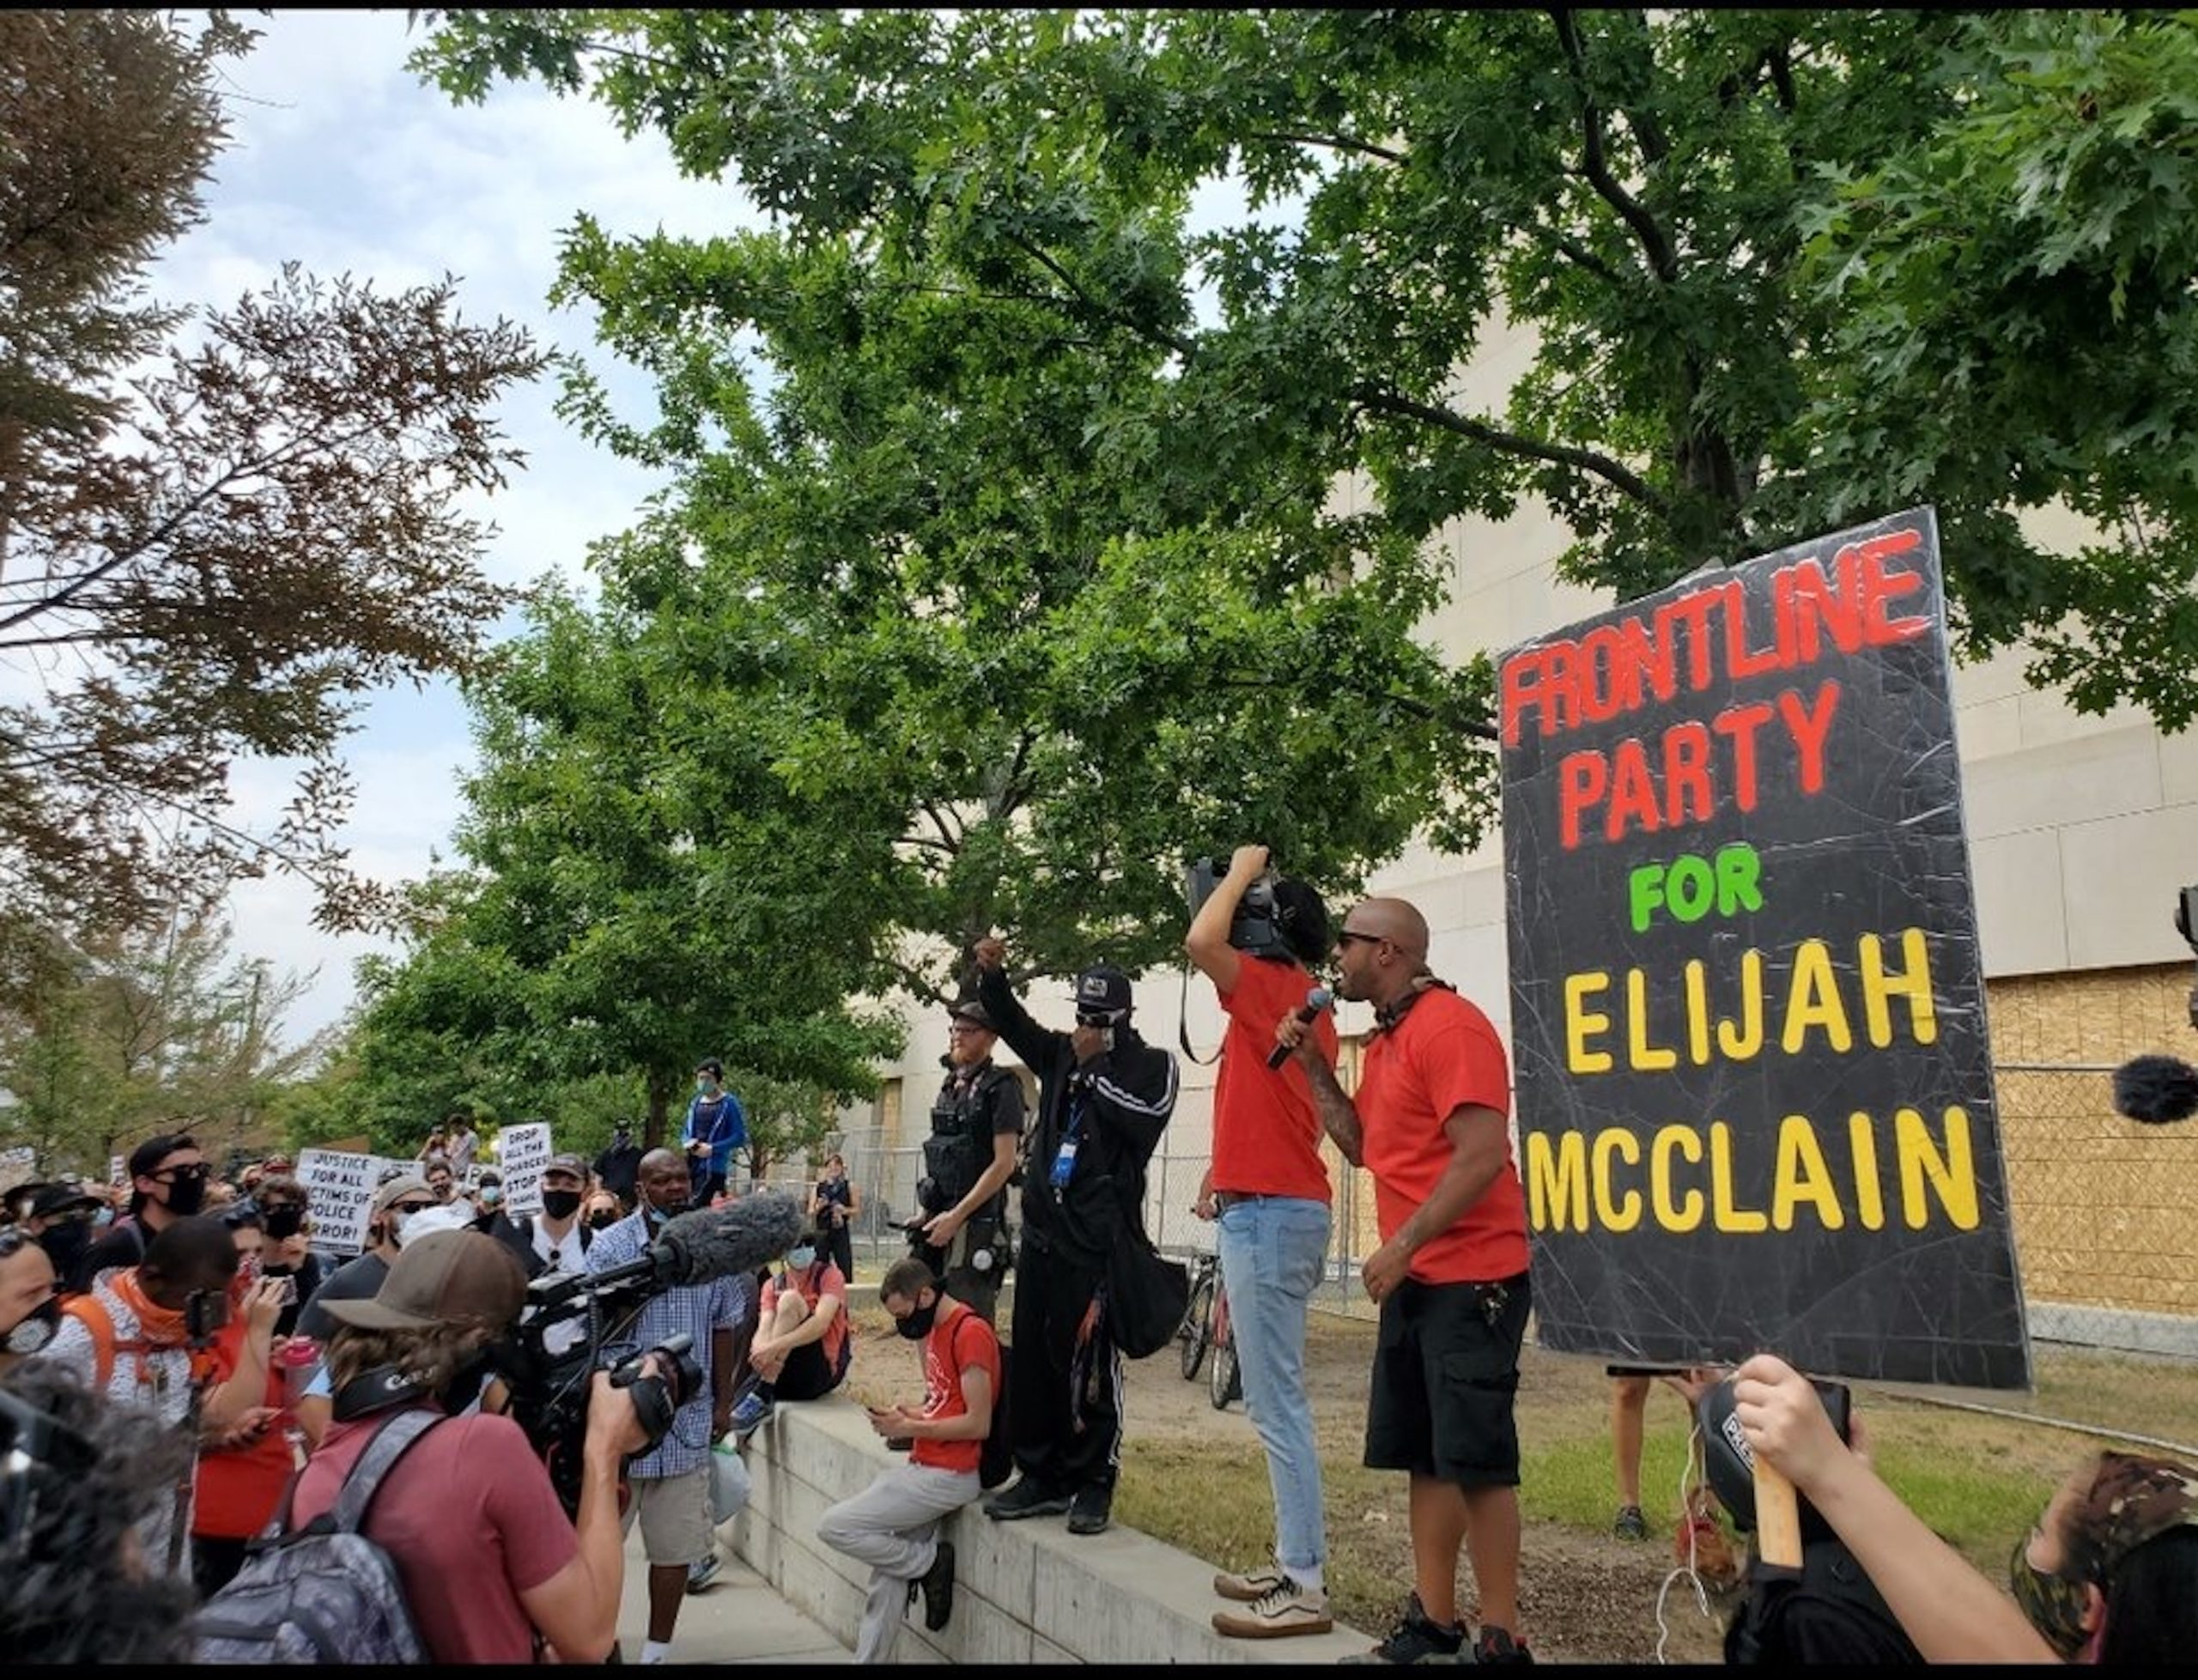 PSL holds rally to protest the arrests and charges of local organizers